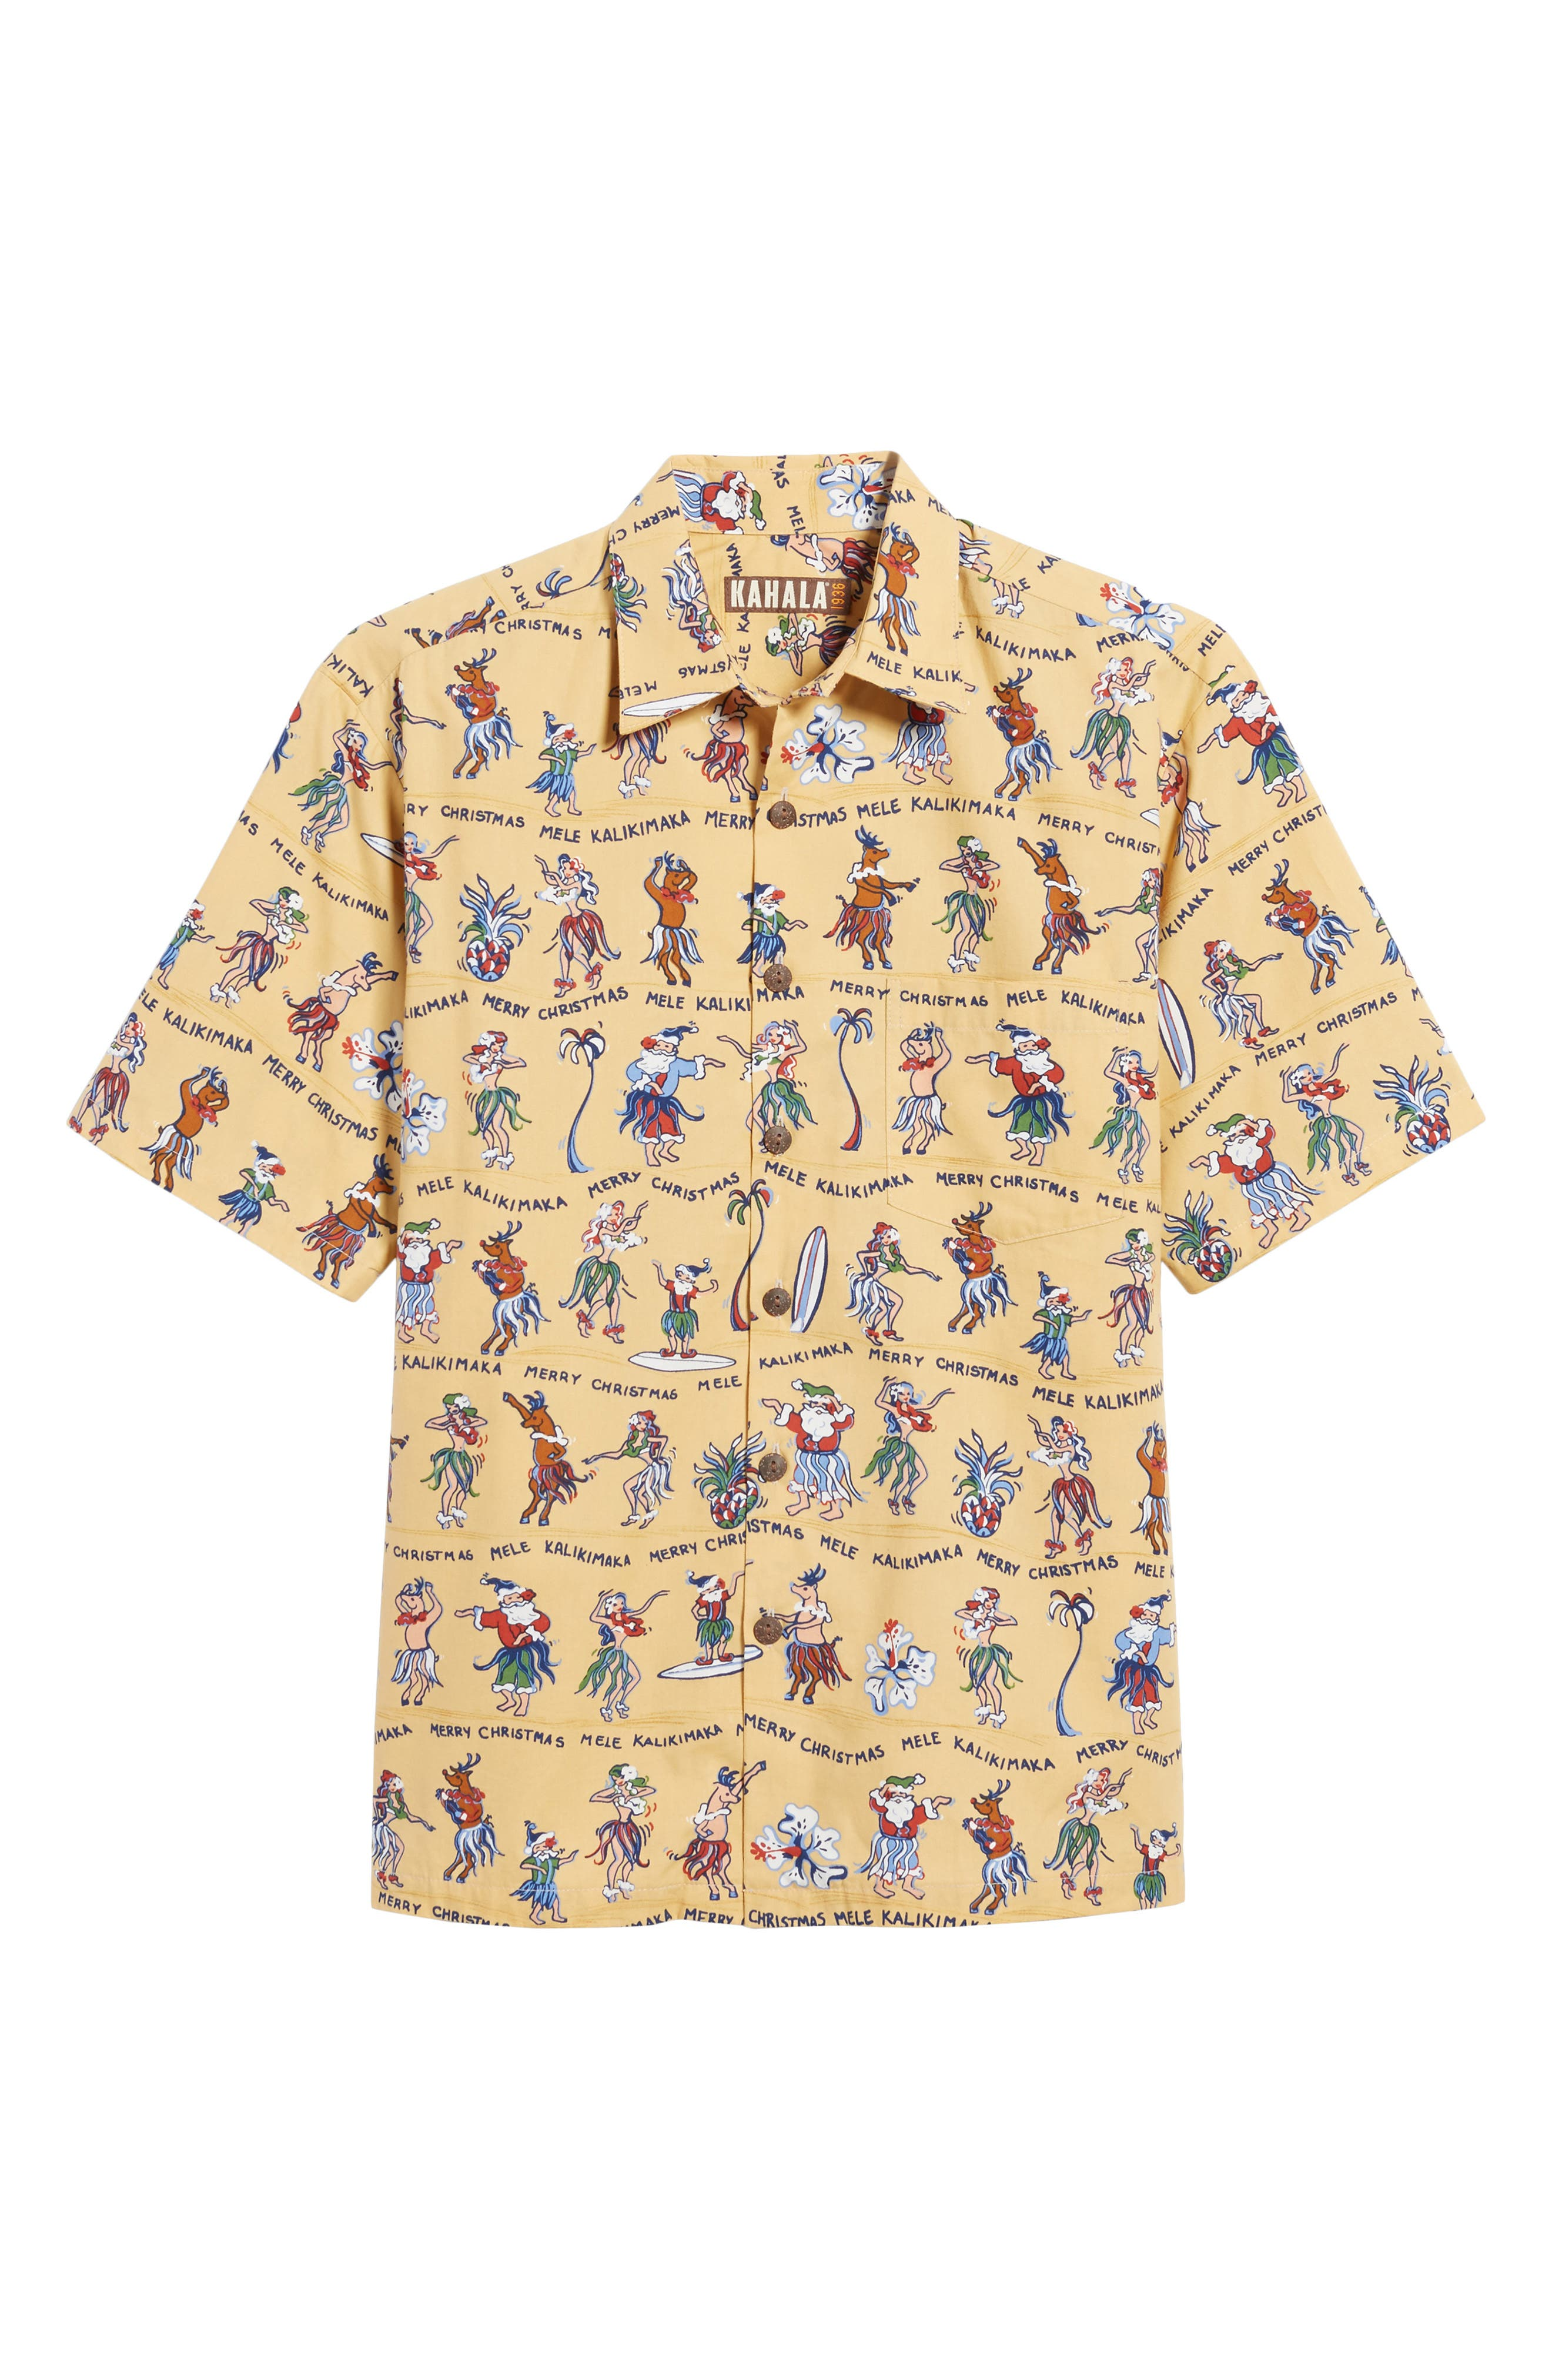 Kalikimaka Classic Fit Print Camp Shirt,                             Alternate thumbnail 6, color,                             Sun